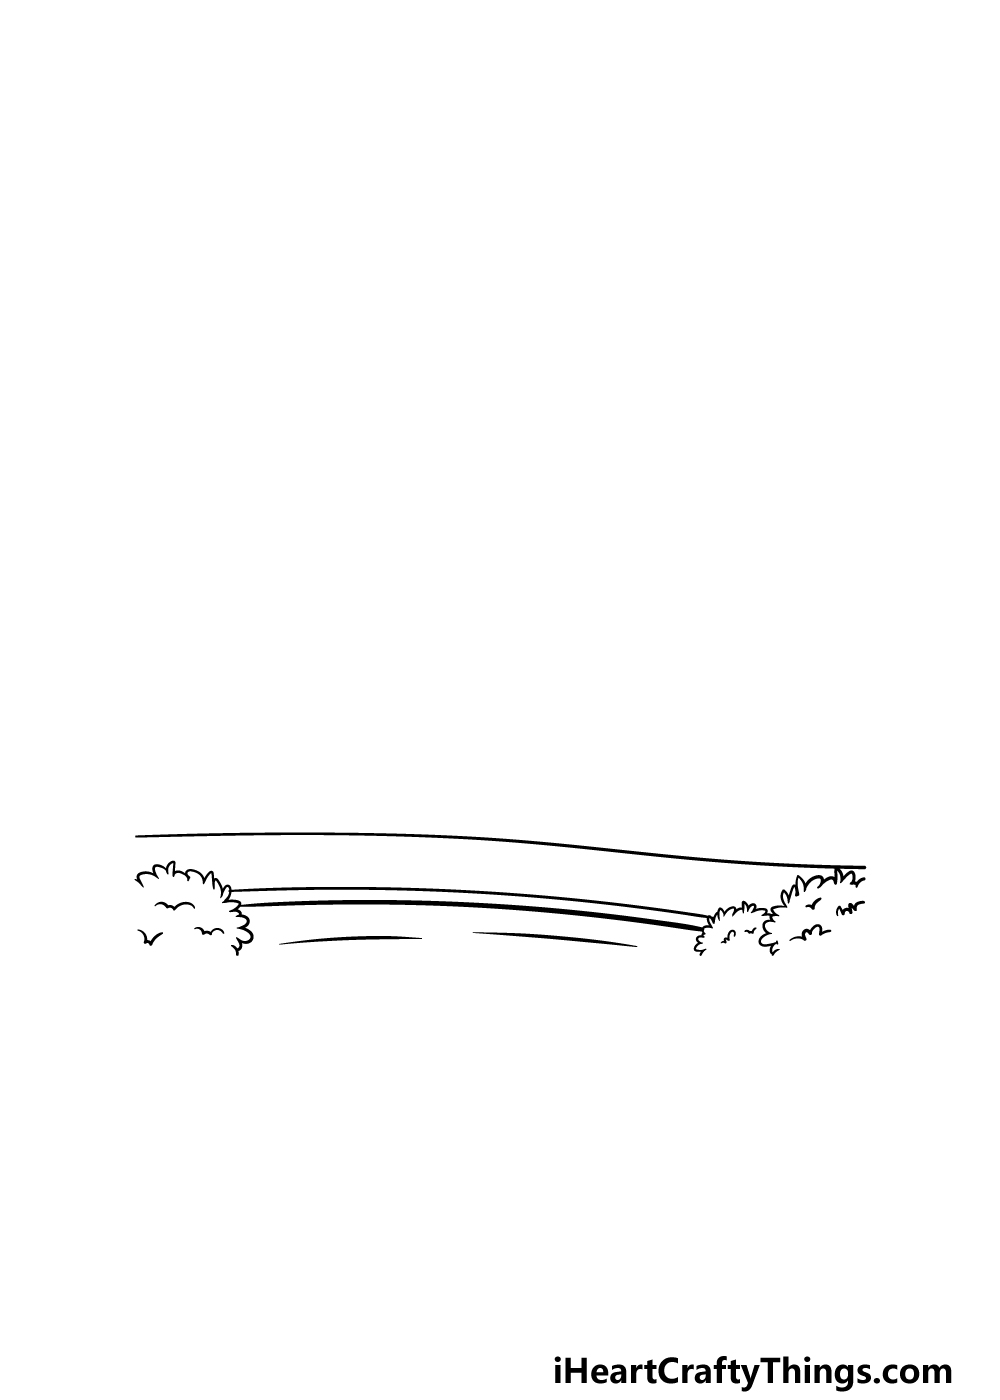 drawing a park step 1